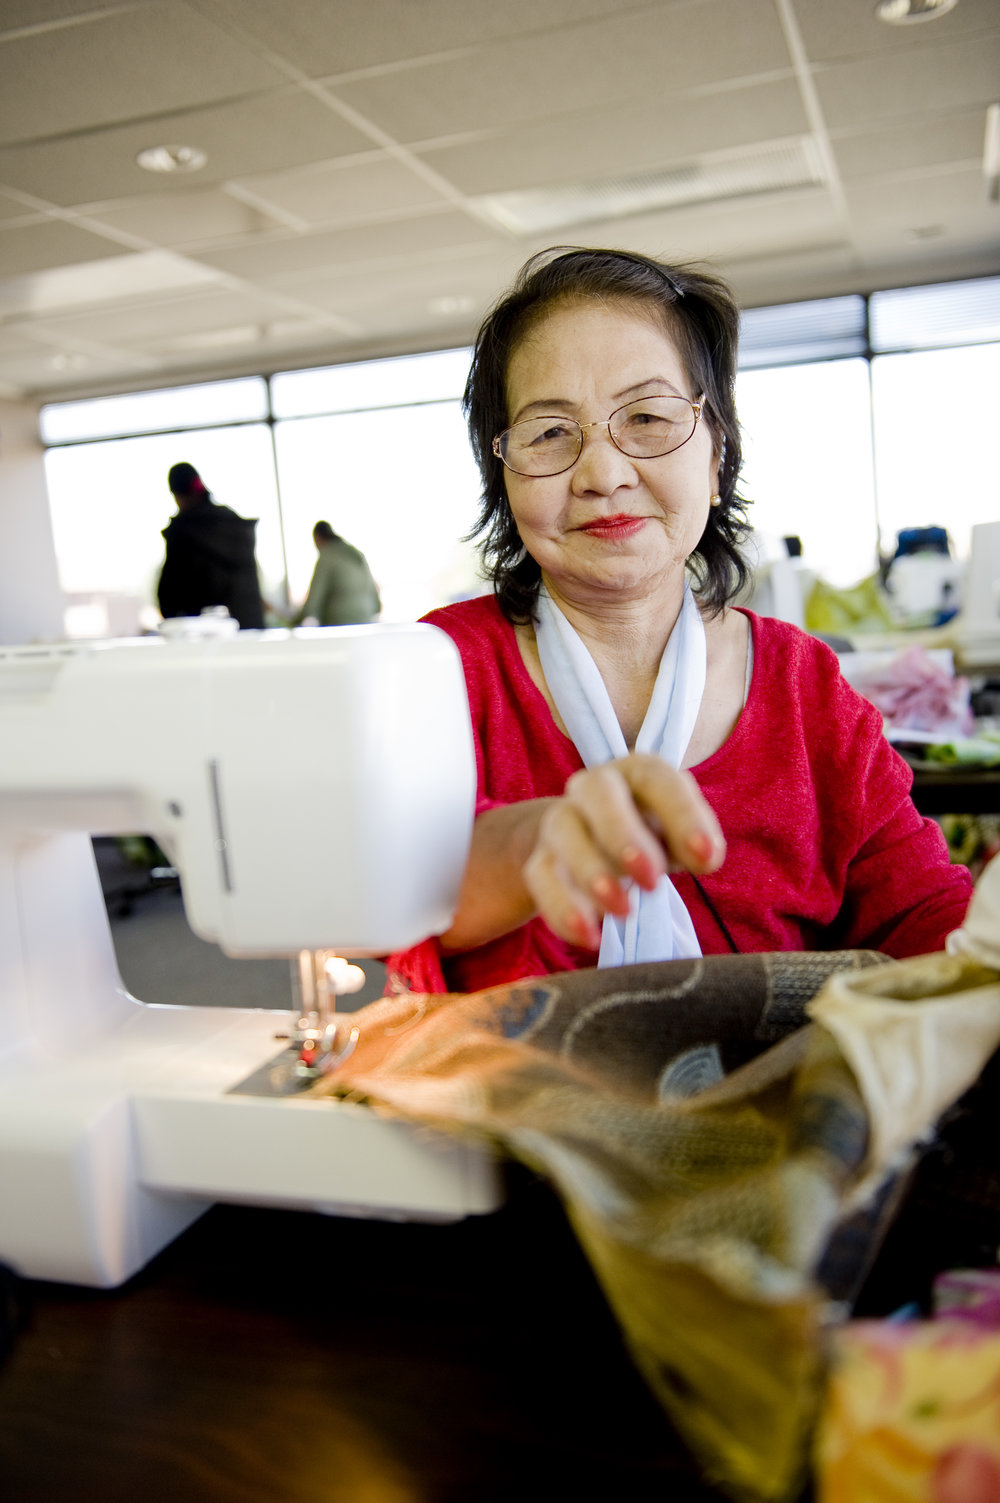 Make a Donation to Support the Sewing Program